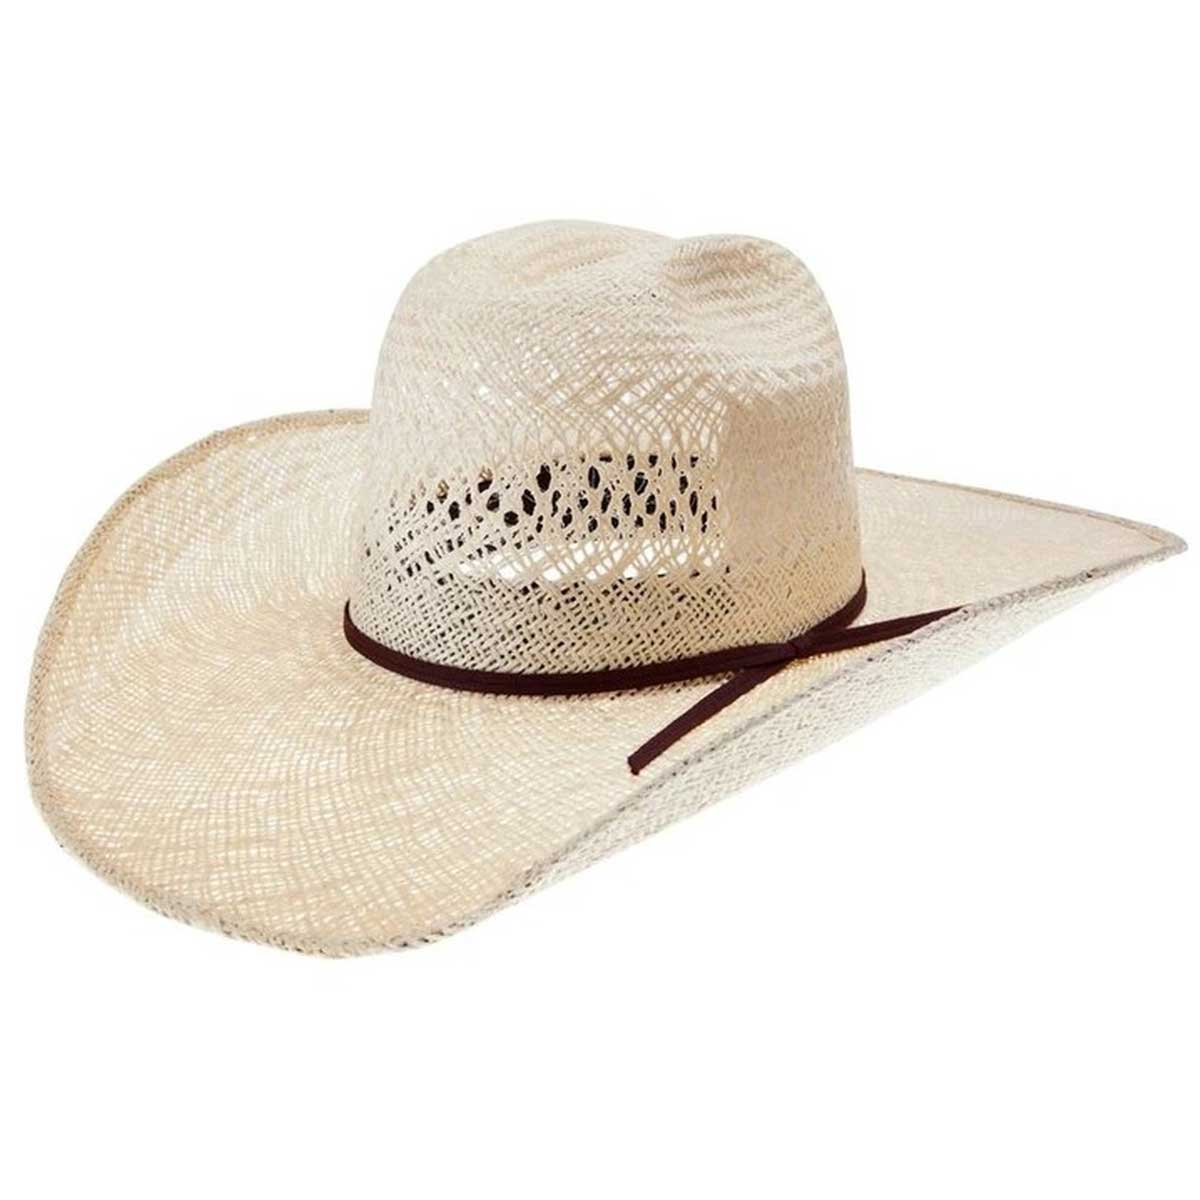 Alboum Hat Co. Rodeo King Jute Straw Hat - Tan